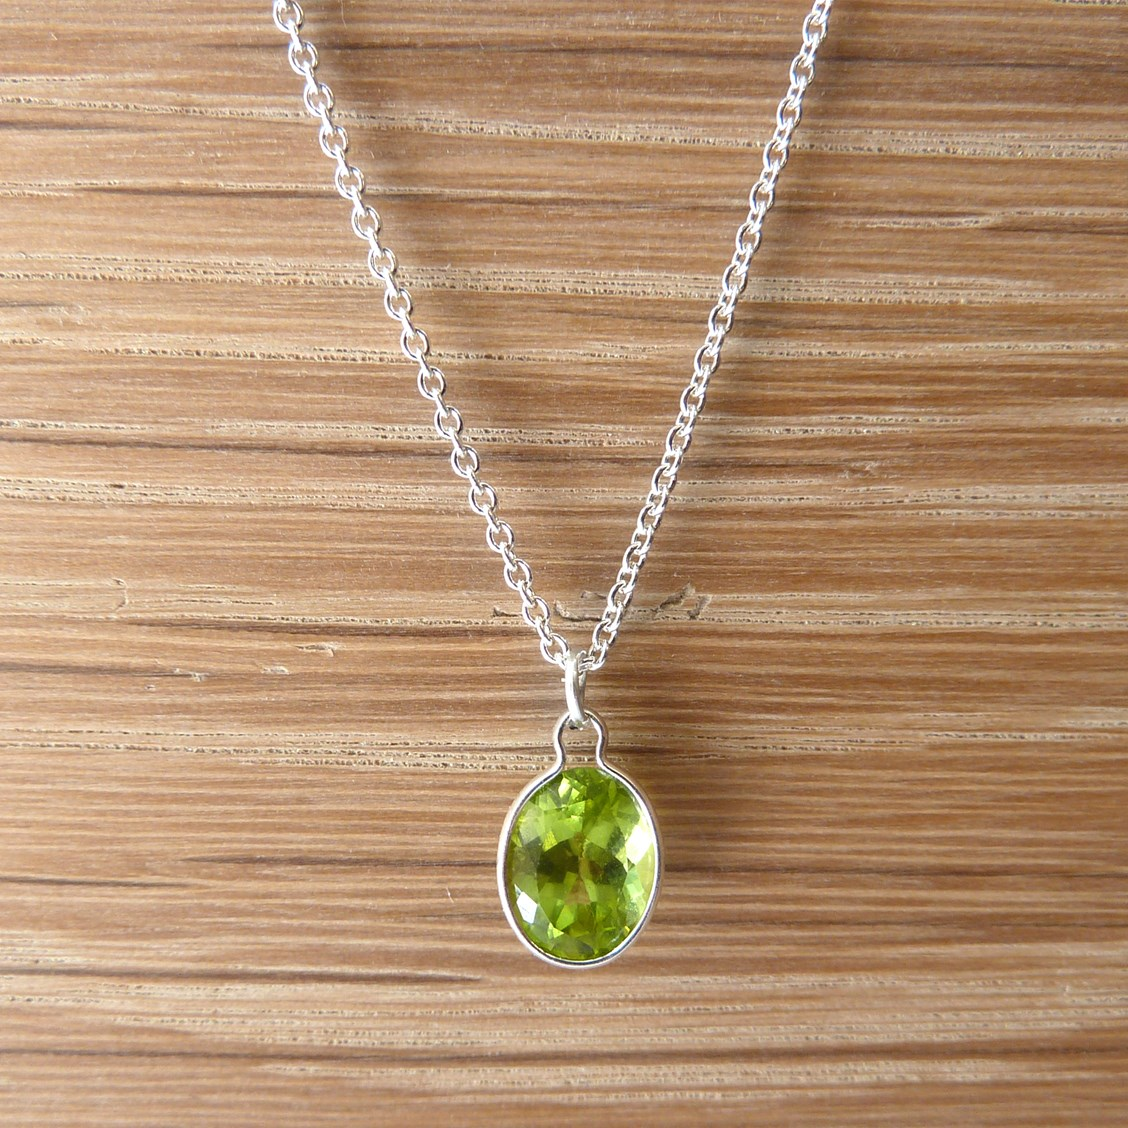 etsy birthstone il august peridot necklace market tiny jewelry